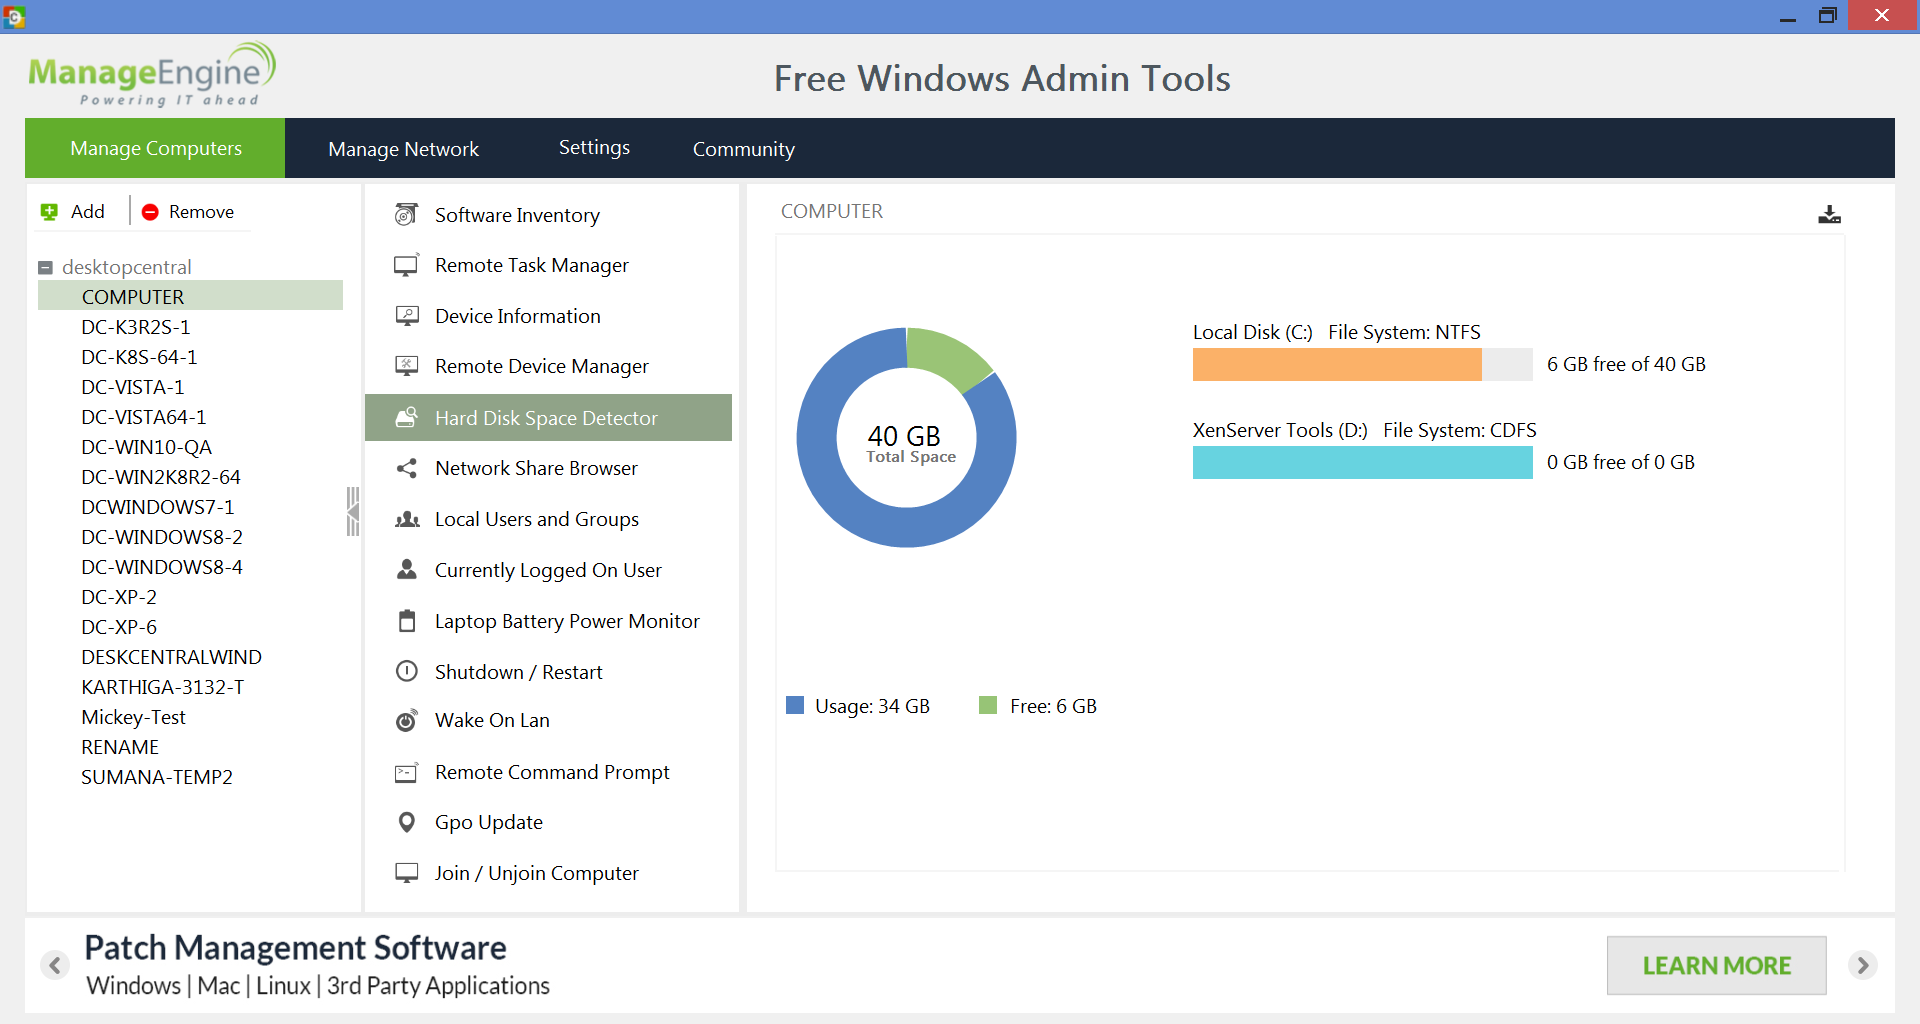 Manageengine free windows admin tools g2 crowd - Best free office software for windows 7 ...